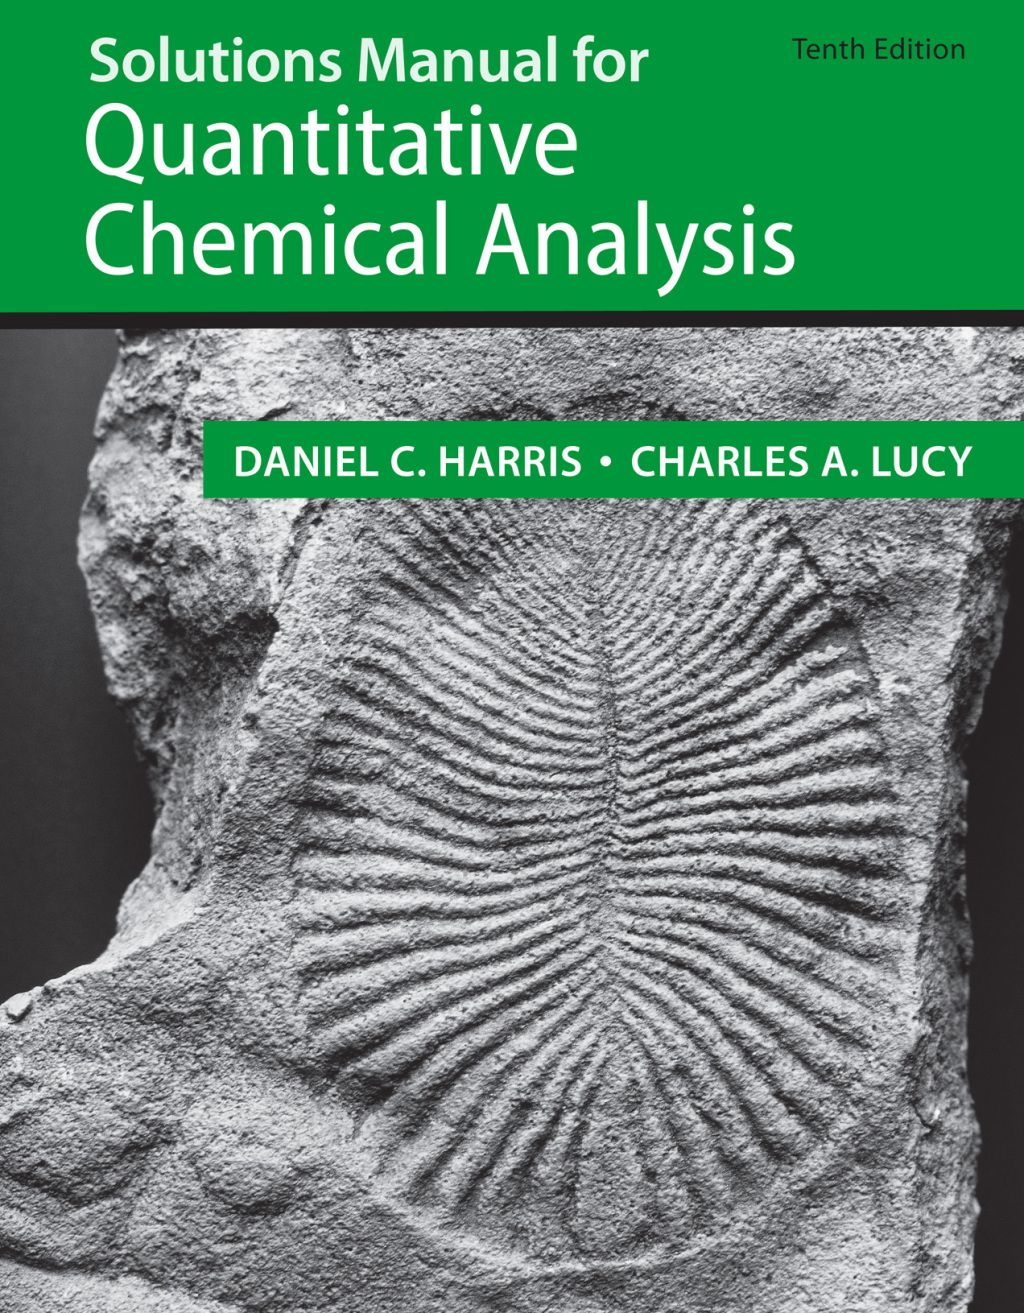 Solutions Manual For Quantitative Chemical Analysis 10th Edition Ebook Rental In 2021 Chemical Analysis Solutions Chemical